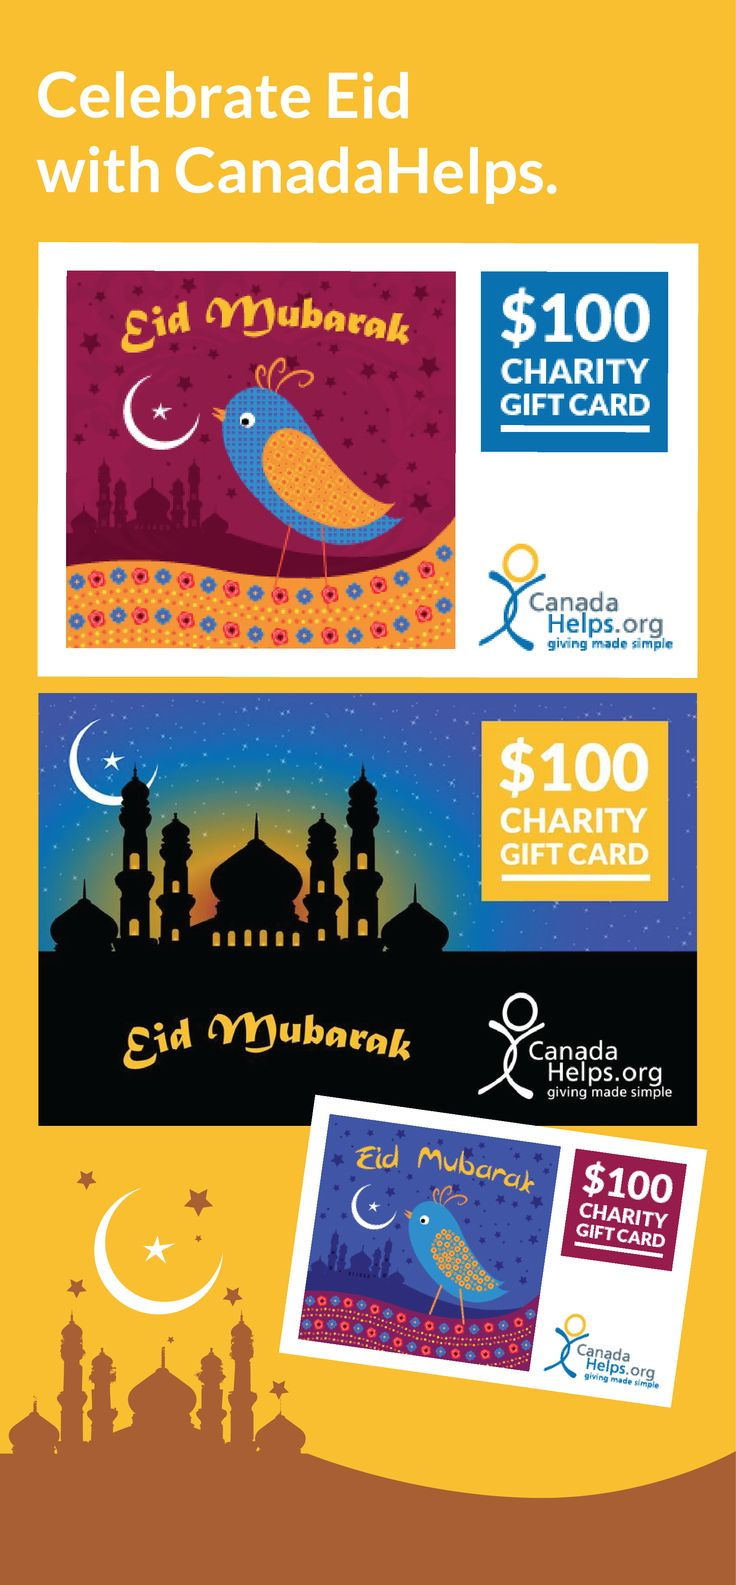 Celebrate Eid with a CanadaHelps Charity Gift Card! #Eid #charity #giving